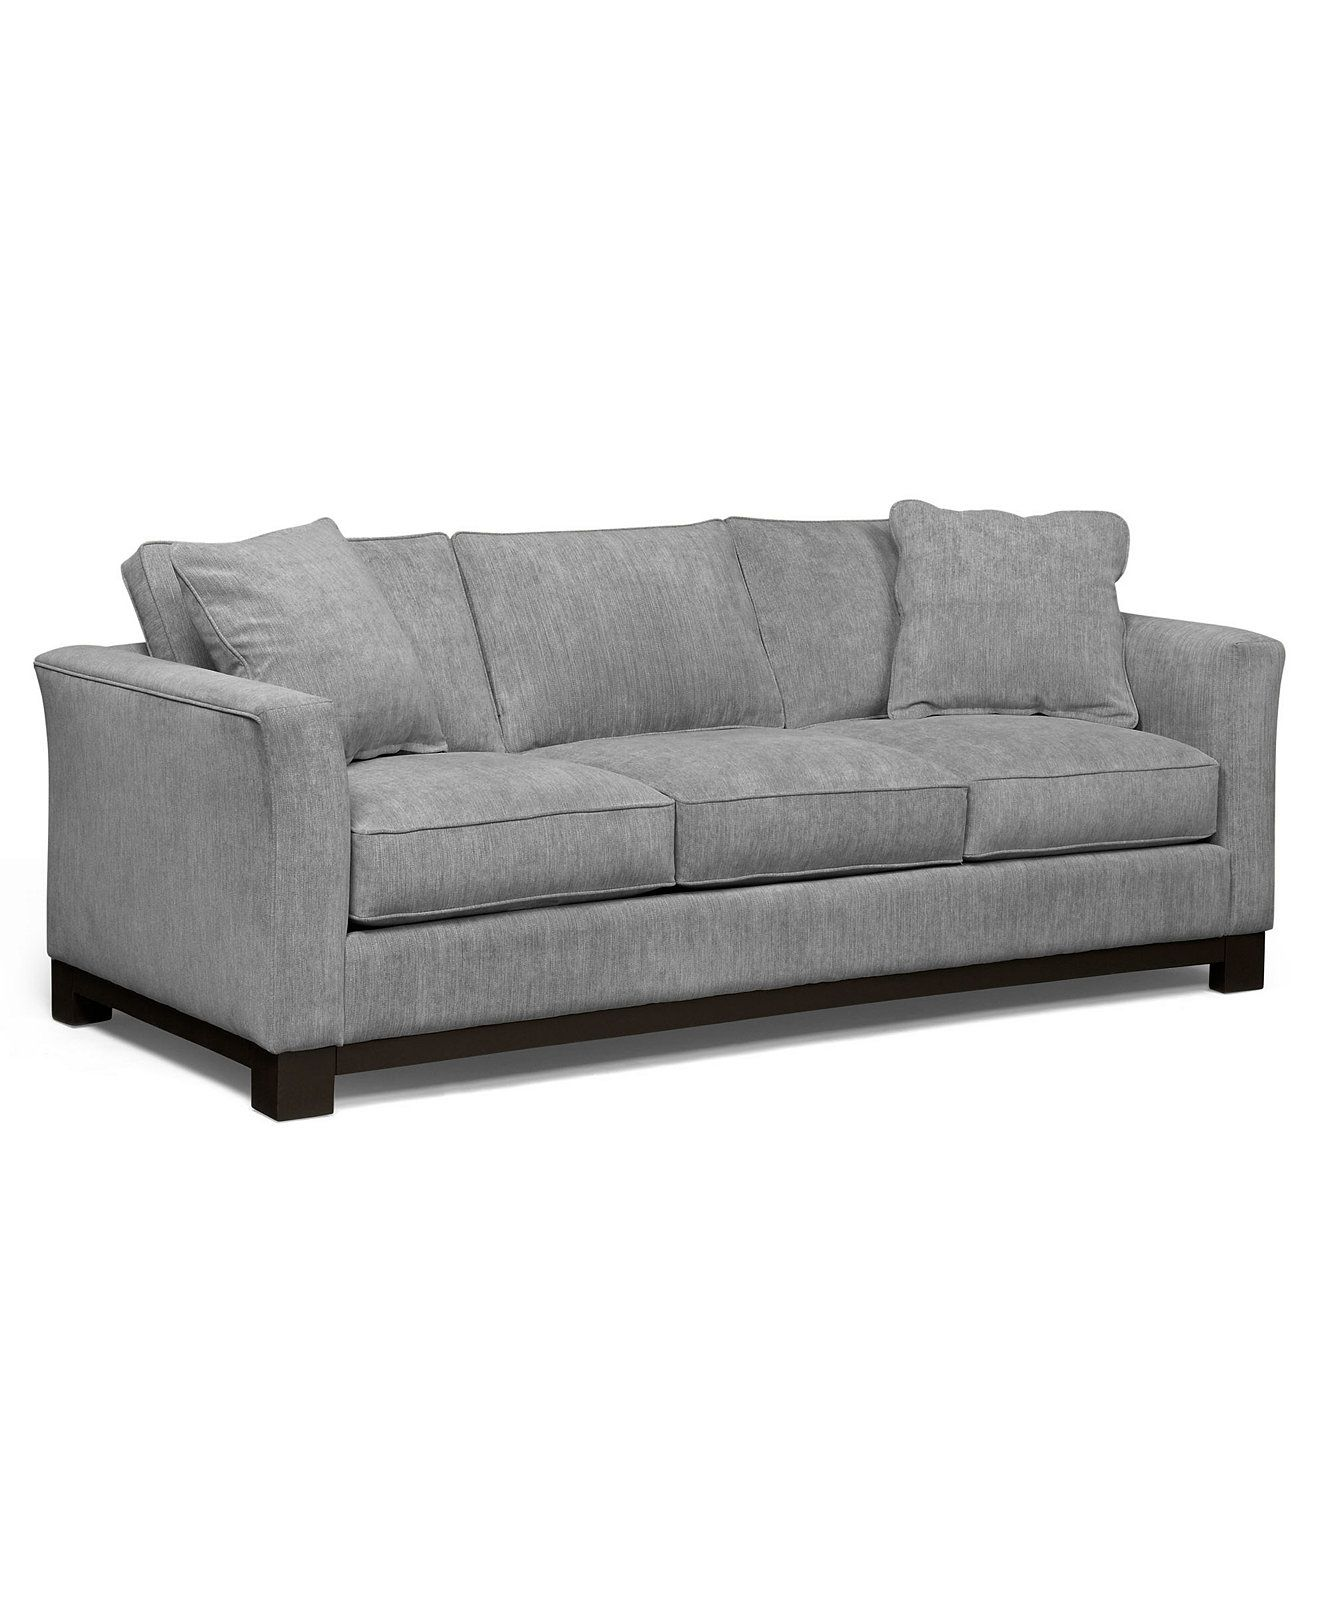 Sofa Online Purchase Kenton Fabric Sofa Custom Colors Couches Sofas Furniture